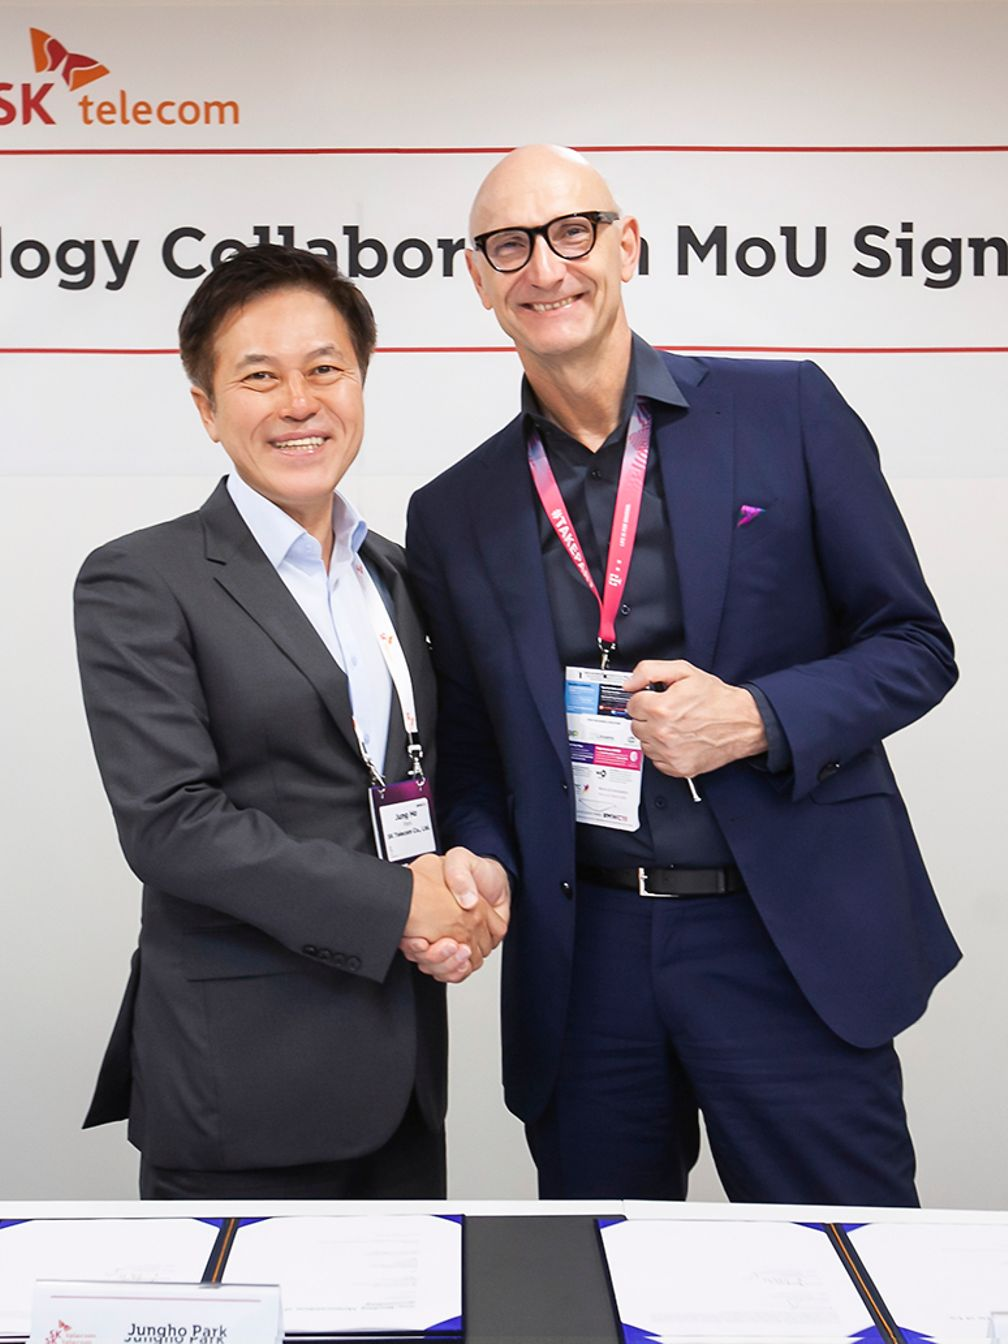 Tim Höttges, CEO of Deutsche Telekom, and Park Jung-ho, CEO and President of SK Telecom